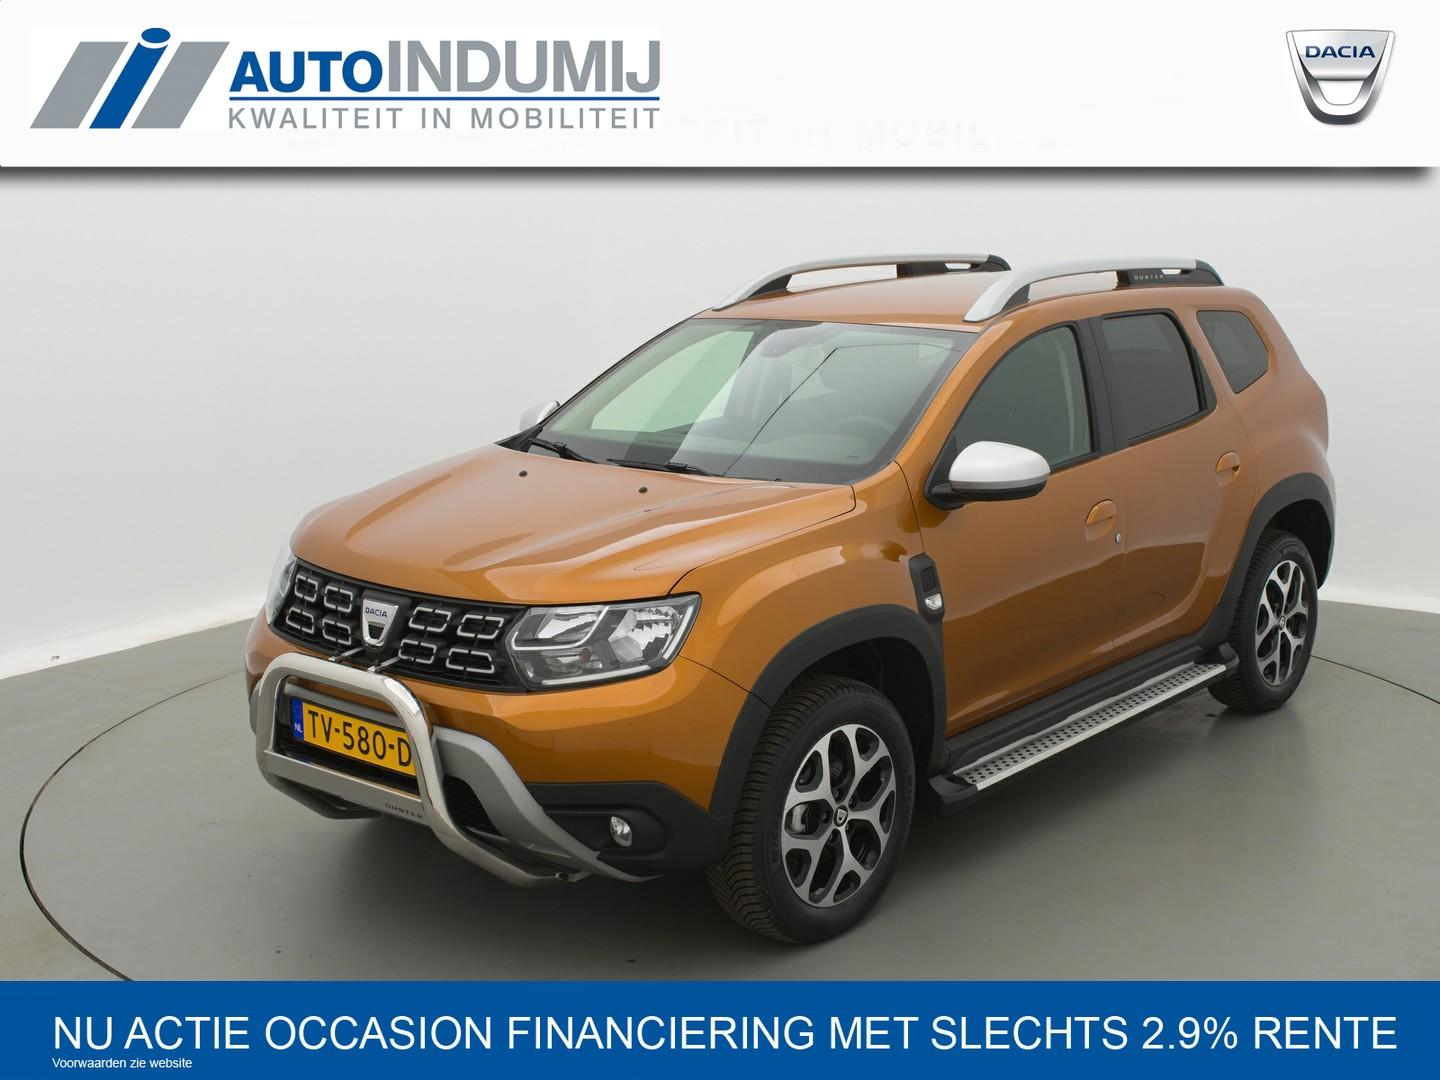 Dacia Duster Tce 125 comfort / 17inch velgen / bull+side bars! / demo